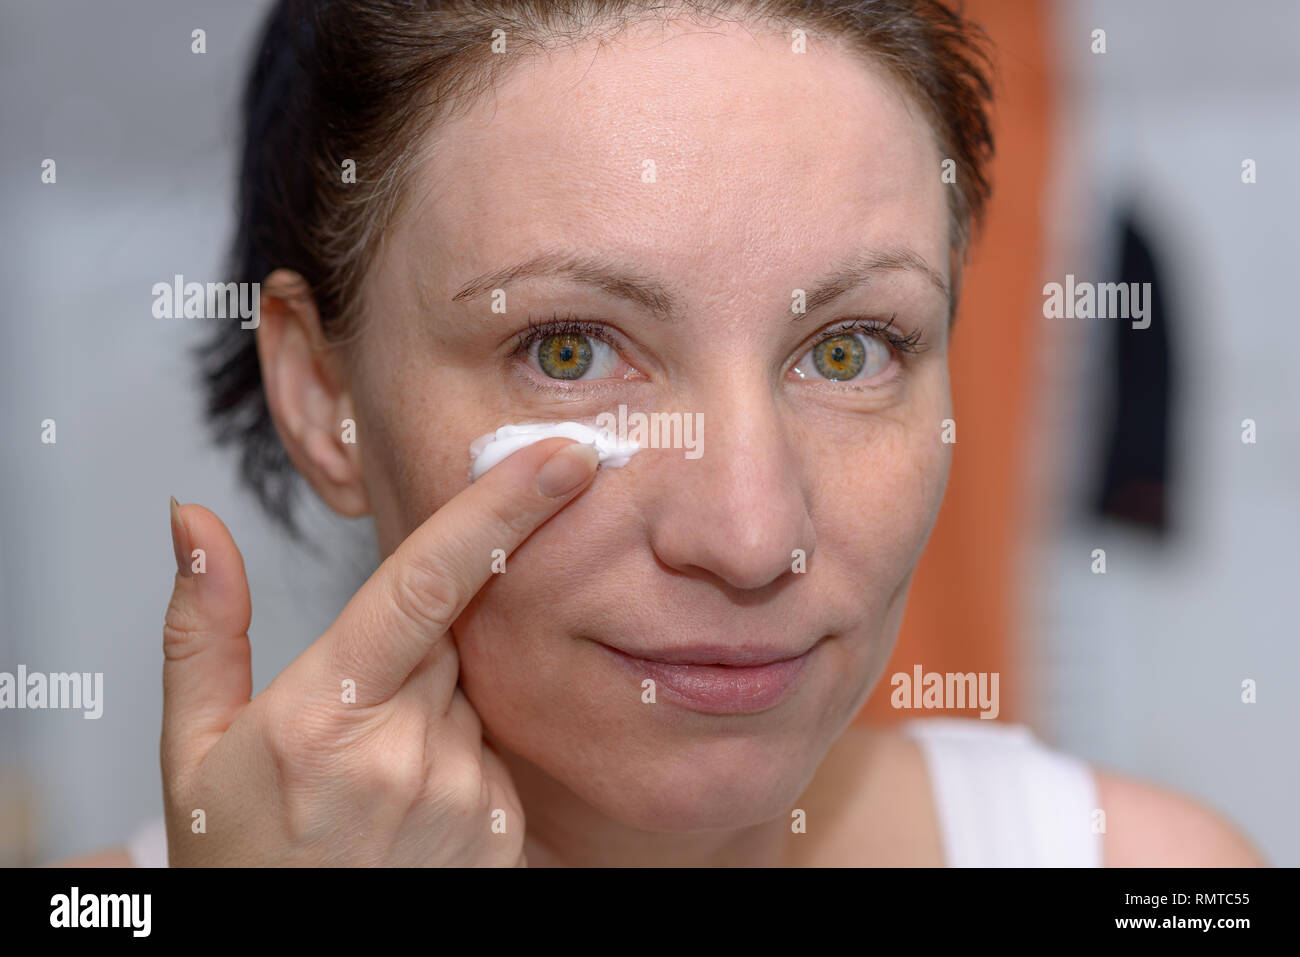 Woman holding a blob of moisturising cream on the tip of her finger in front of her face in a skincare and beauty concept - Stock Image